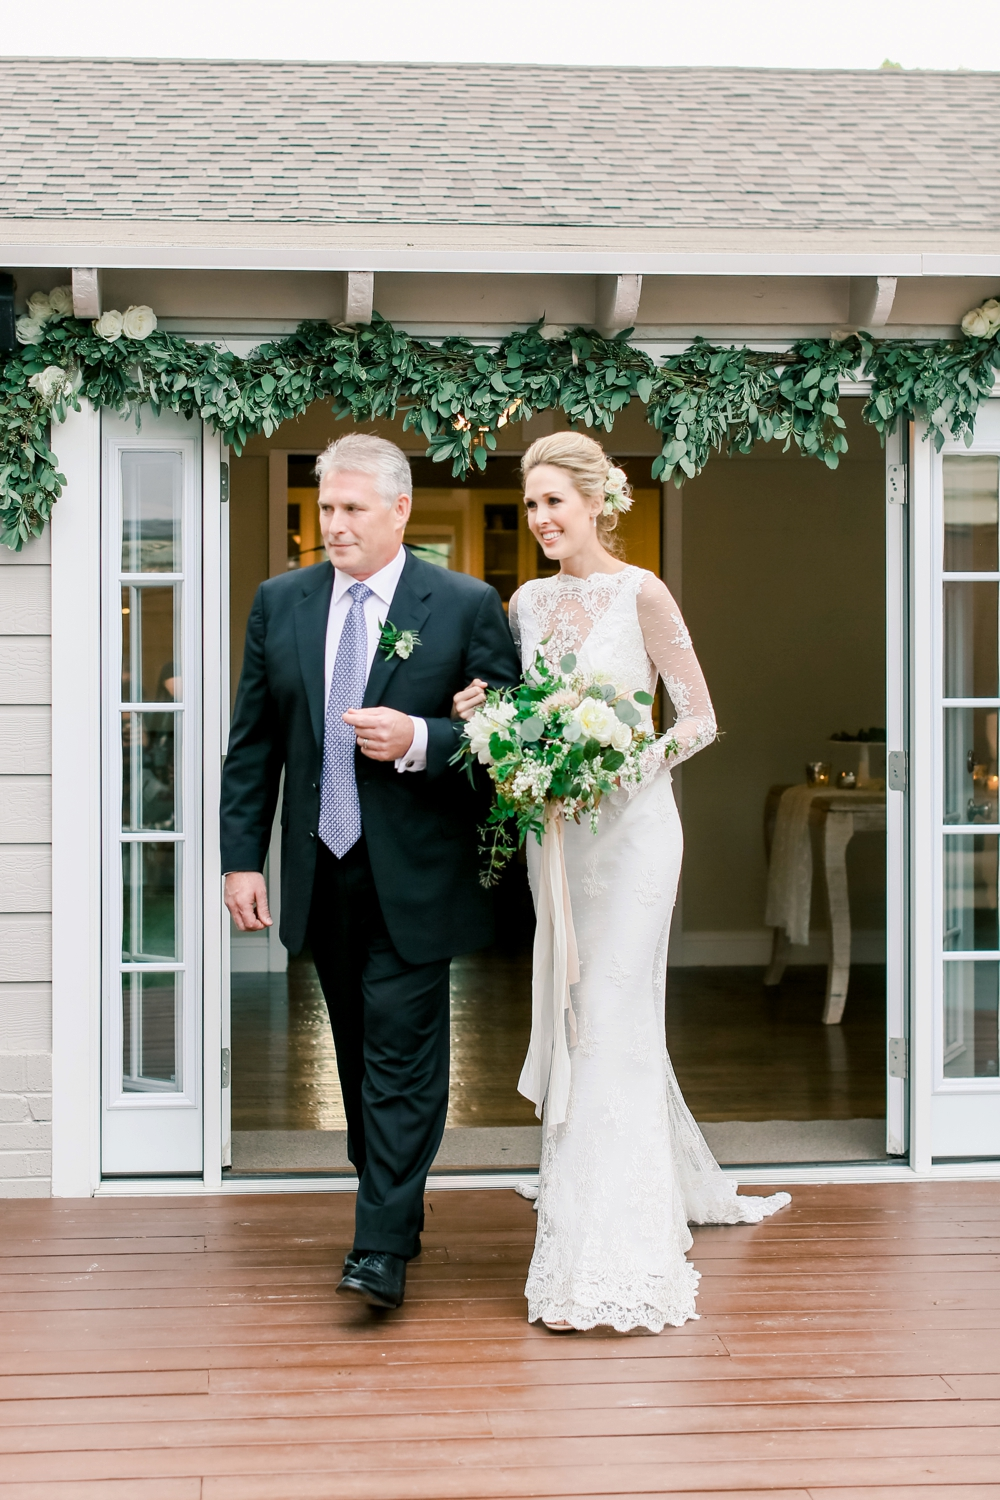 Lindsey Zamora Wedding Planning and Design Dallas